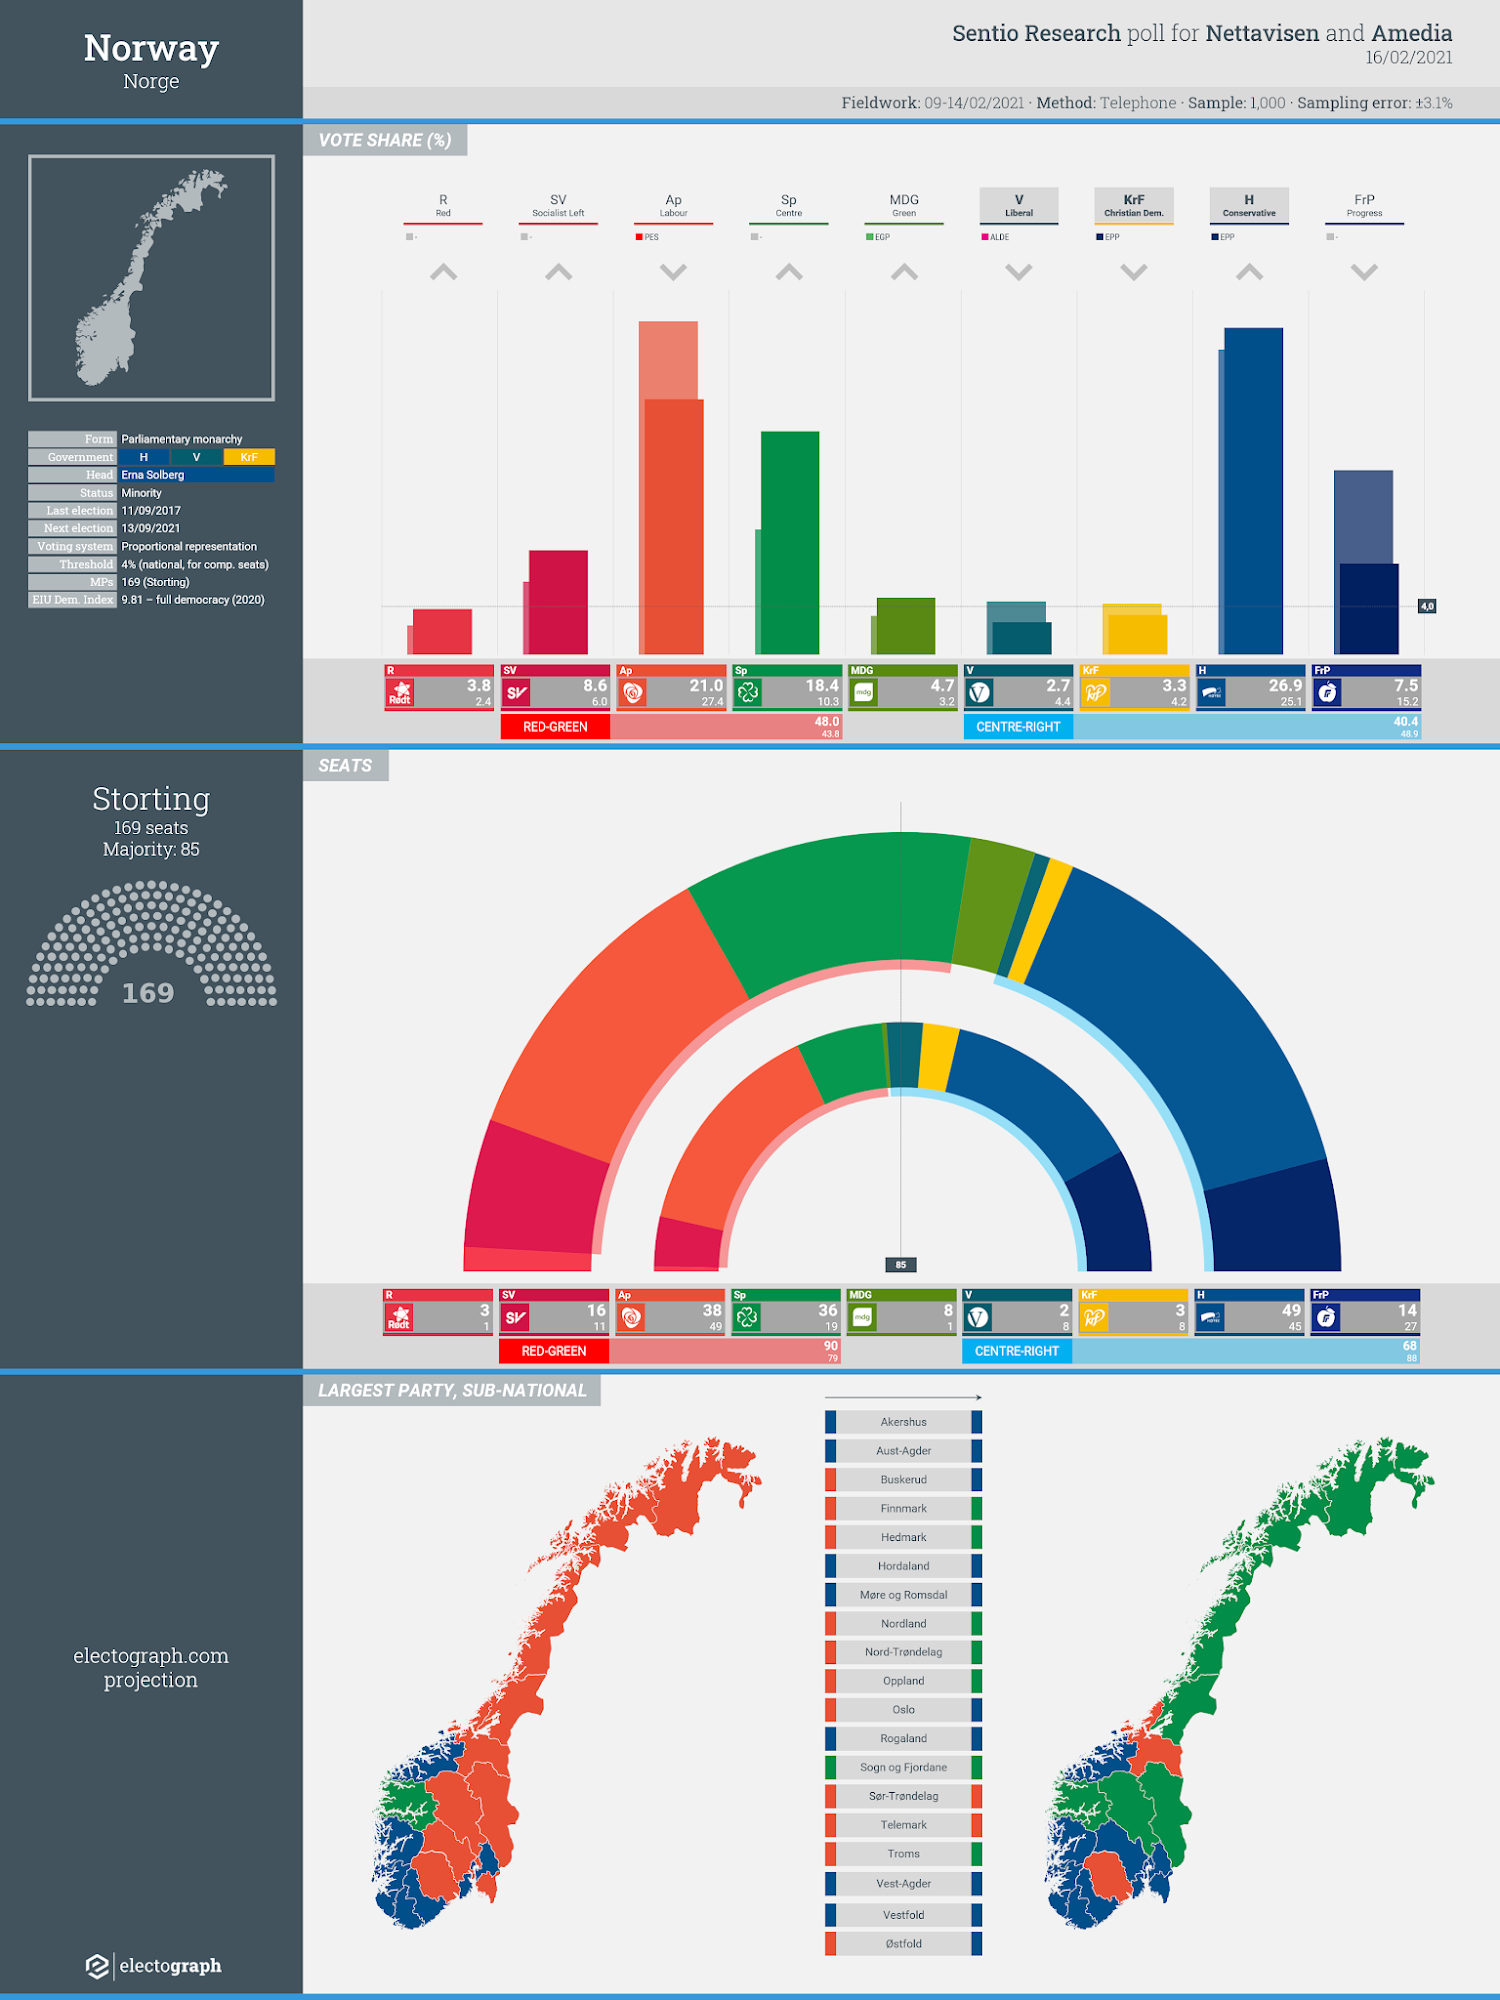 NORWAY: Sentio Research poll chart for Nettavisen and Amedia, 16 February 2021